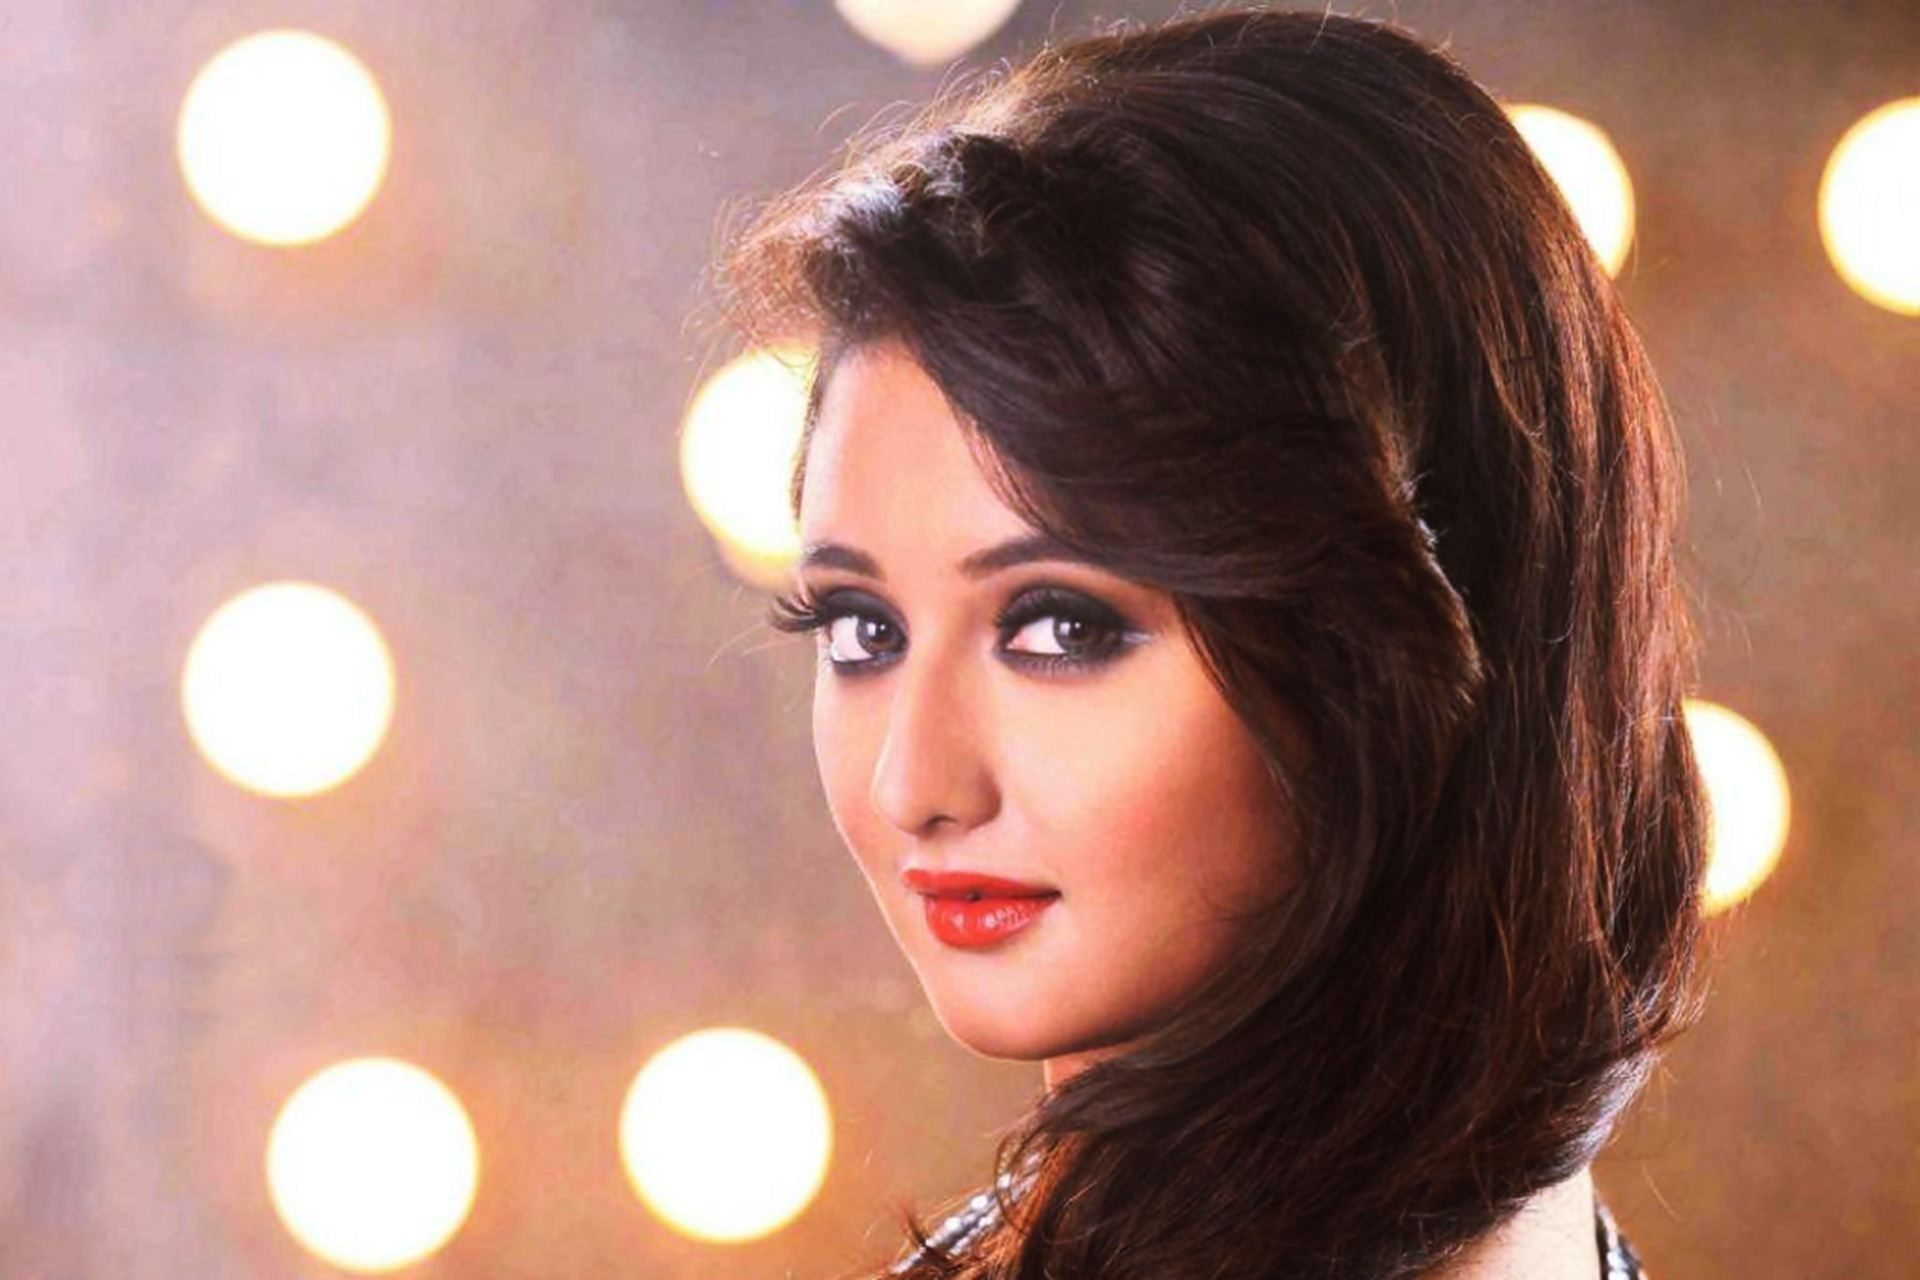 rashmi desai kinopoiskrashmi desai wikipedia, rashmi desai and nandish sandhu baby, rashmi desai биография, rashmi desai facebook, rashmi desai death, rashmi desai vk, rashmi desai and nandish sandhu dance, rashmi desai husband, rashmi desai baby, rashmi desai kinopoisk, rashmi desai instagram, rashmi desai smert, rashmi desai жизнь, rashmi desai википедия, rashmi desai biography, rashmi desai serials, rashmi desai films, rashmi desai wikipedia free encyclopedia, rashmi desai foto, rashmi desai and her husband